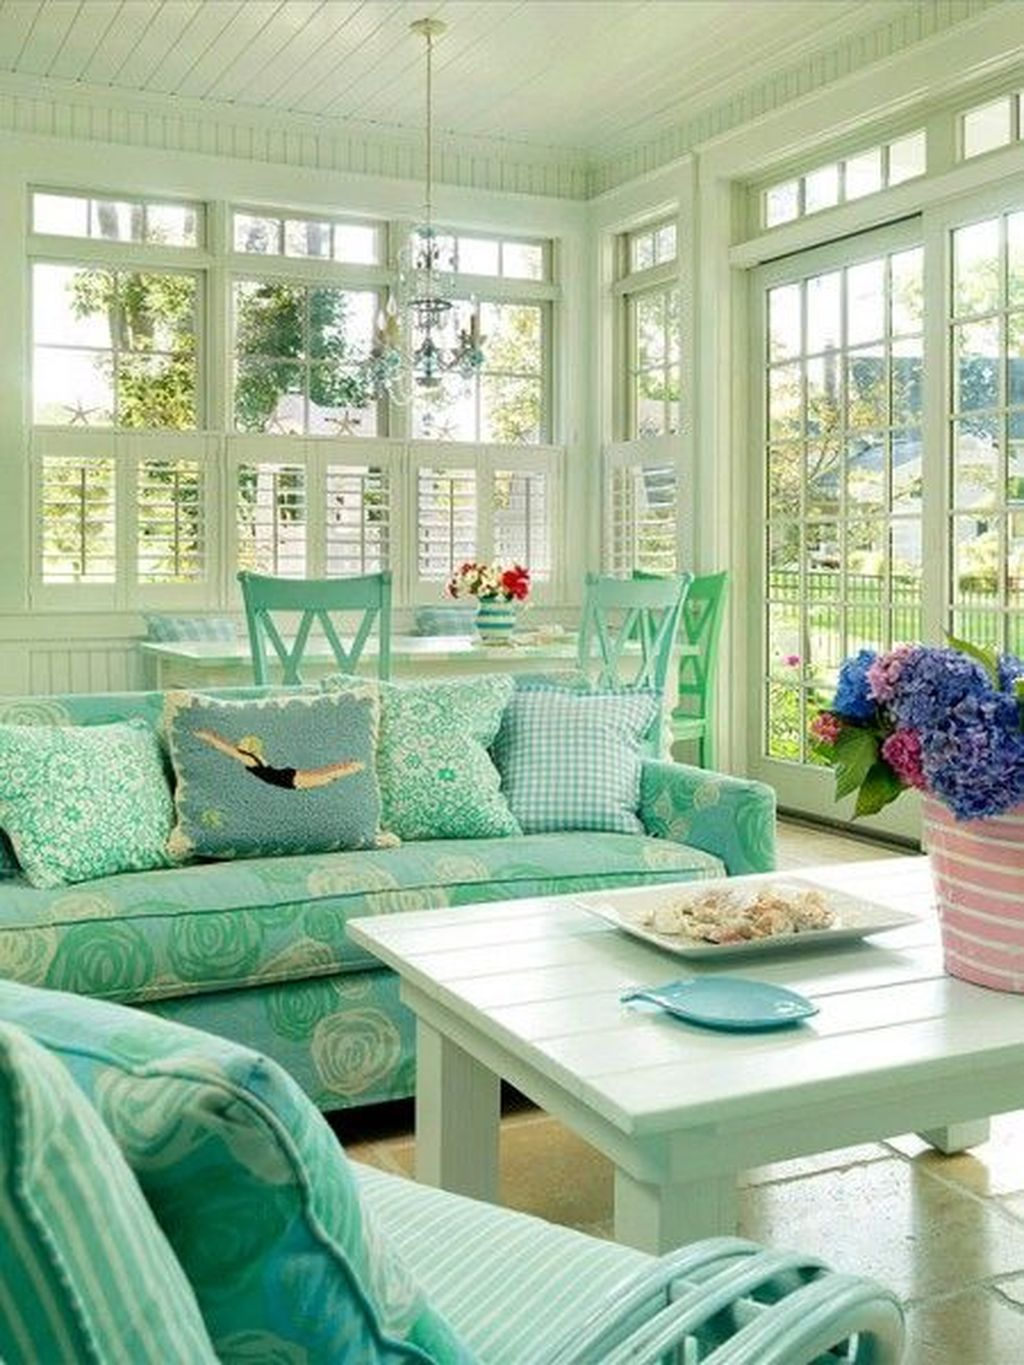 Gorgeous Modern Sunroom Design Ideas To Relax In The Summer 08